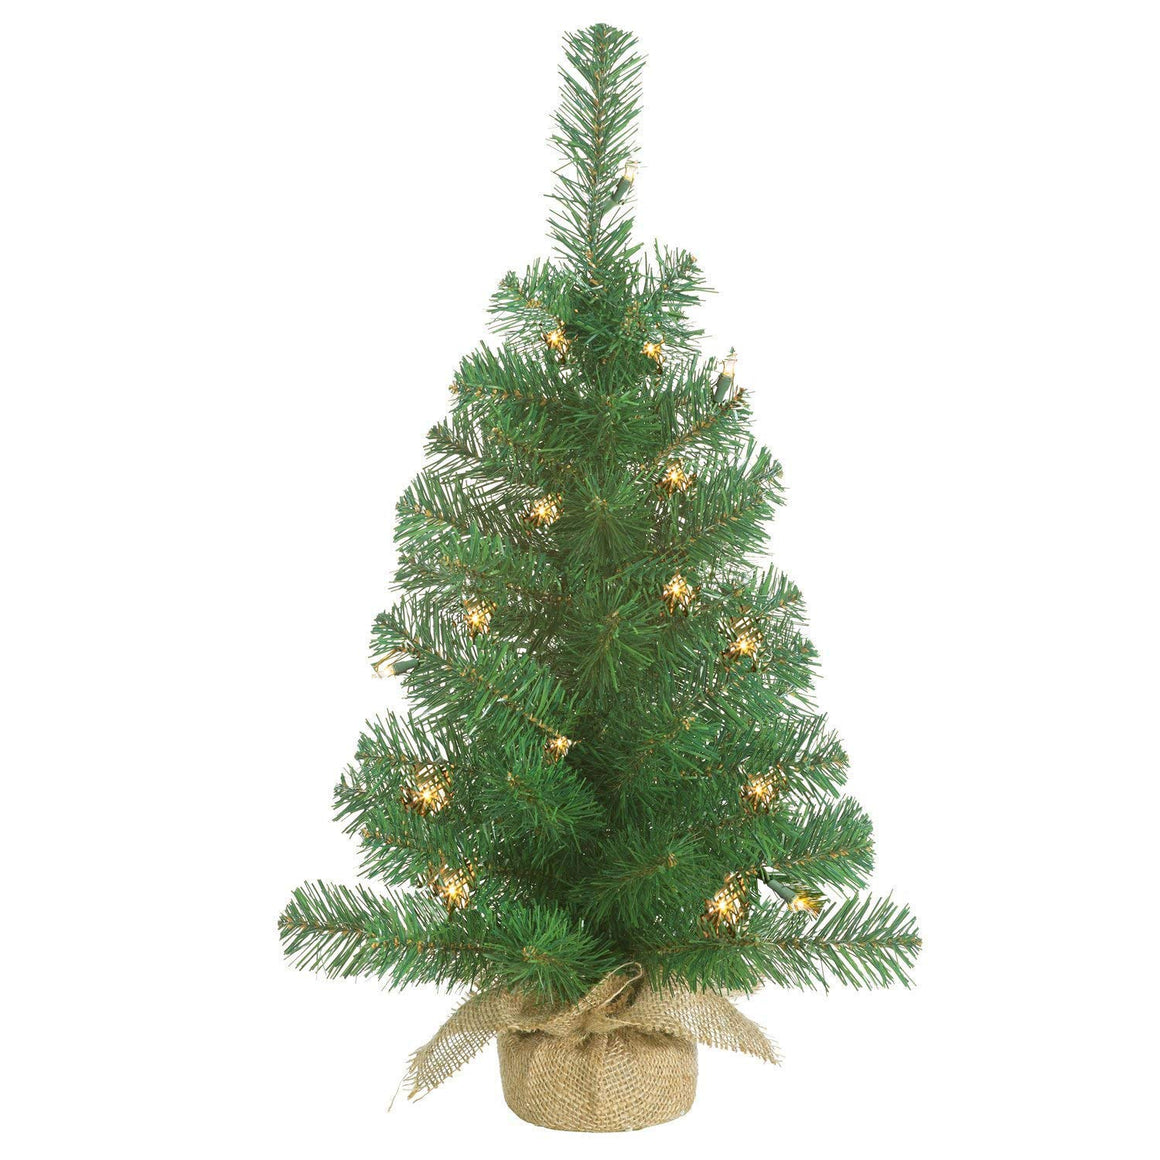 Lighted Christmas Pine Tree 24 Inches High with Battery Operated Timer and Warm White LED Lights - Burlap Wrapped Base- Artificial Pre-Lit Christmas Pine Tree - Indoor / Outdoor - Steady and Flashing